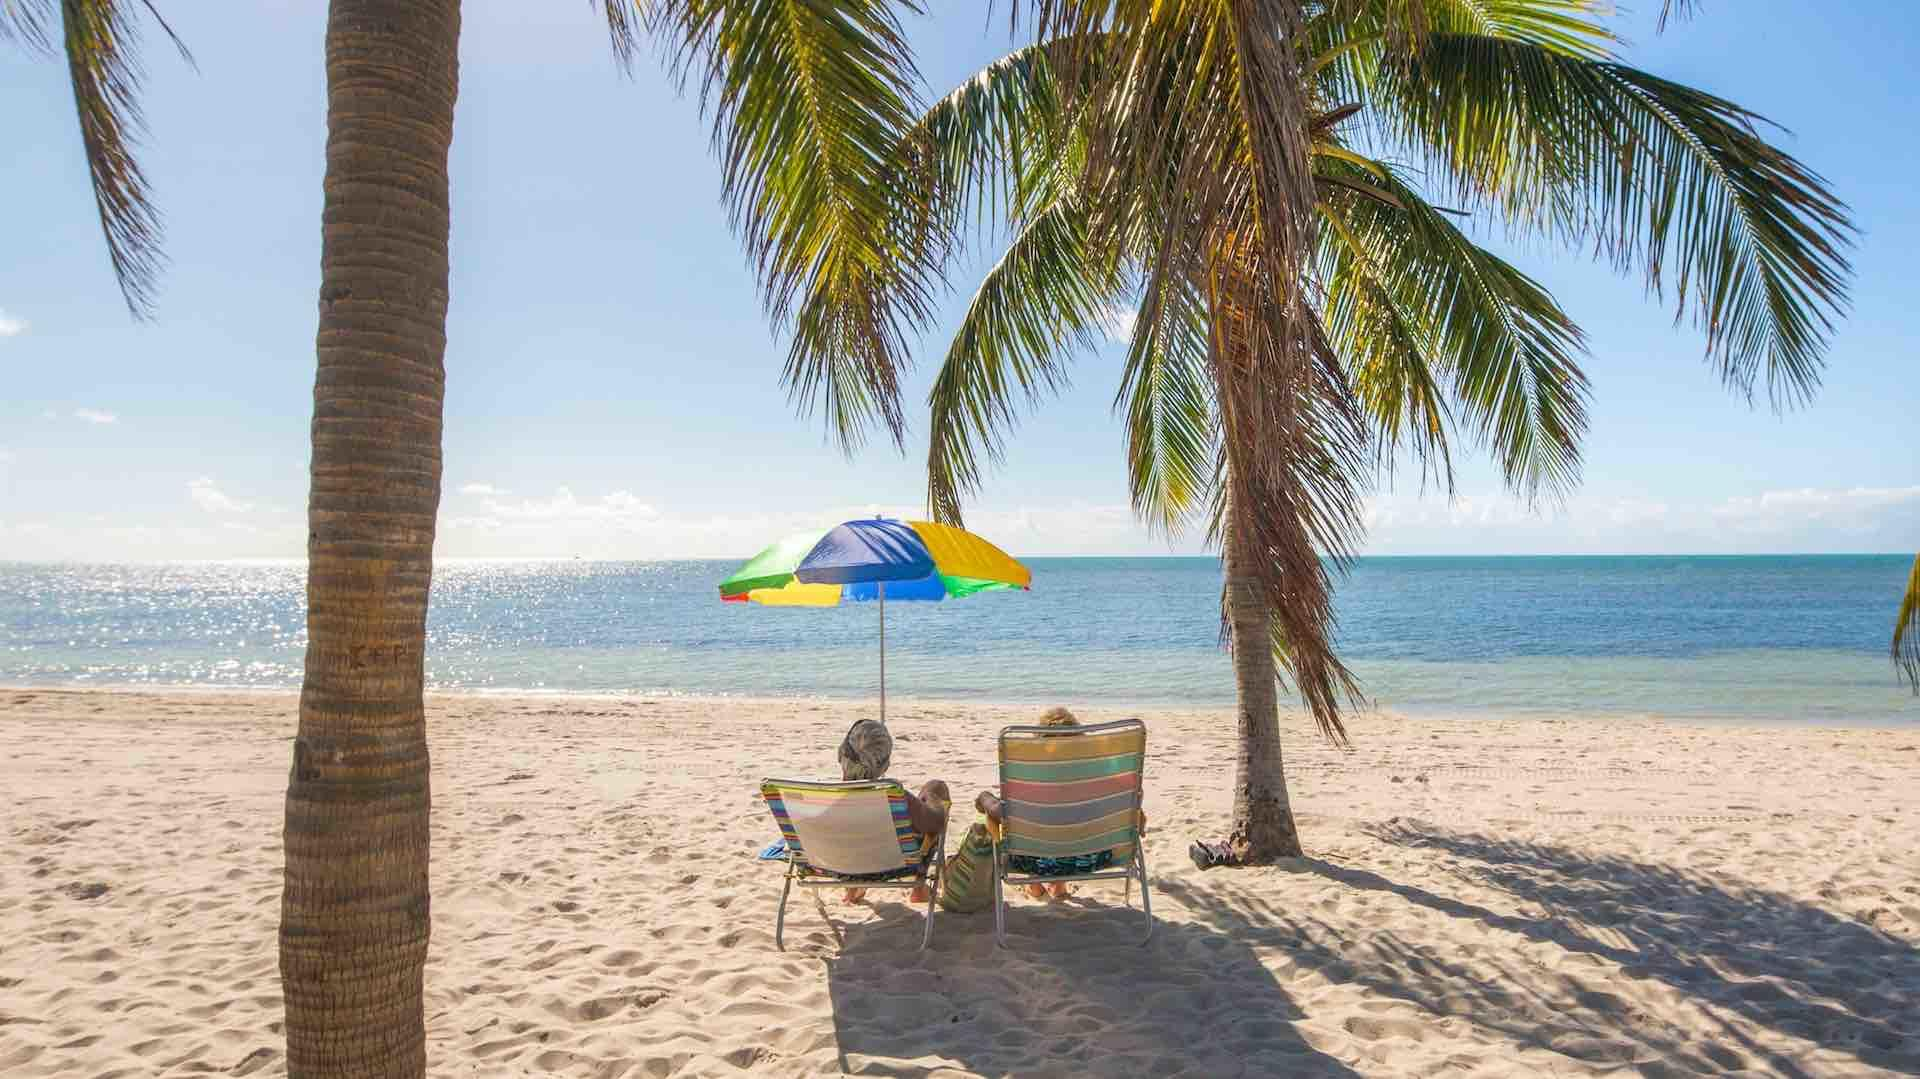 Smathers beach is the largest public beach in Key West, about 1/2 mile long...